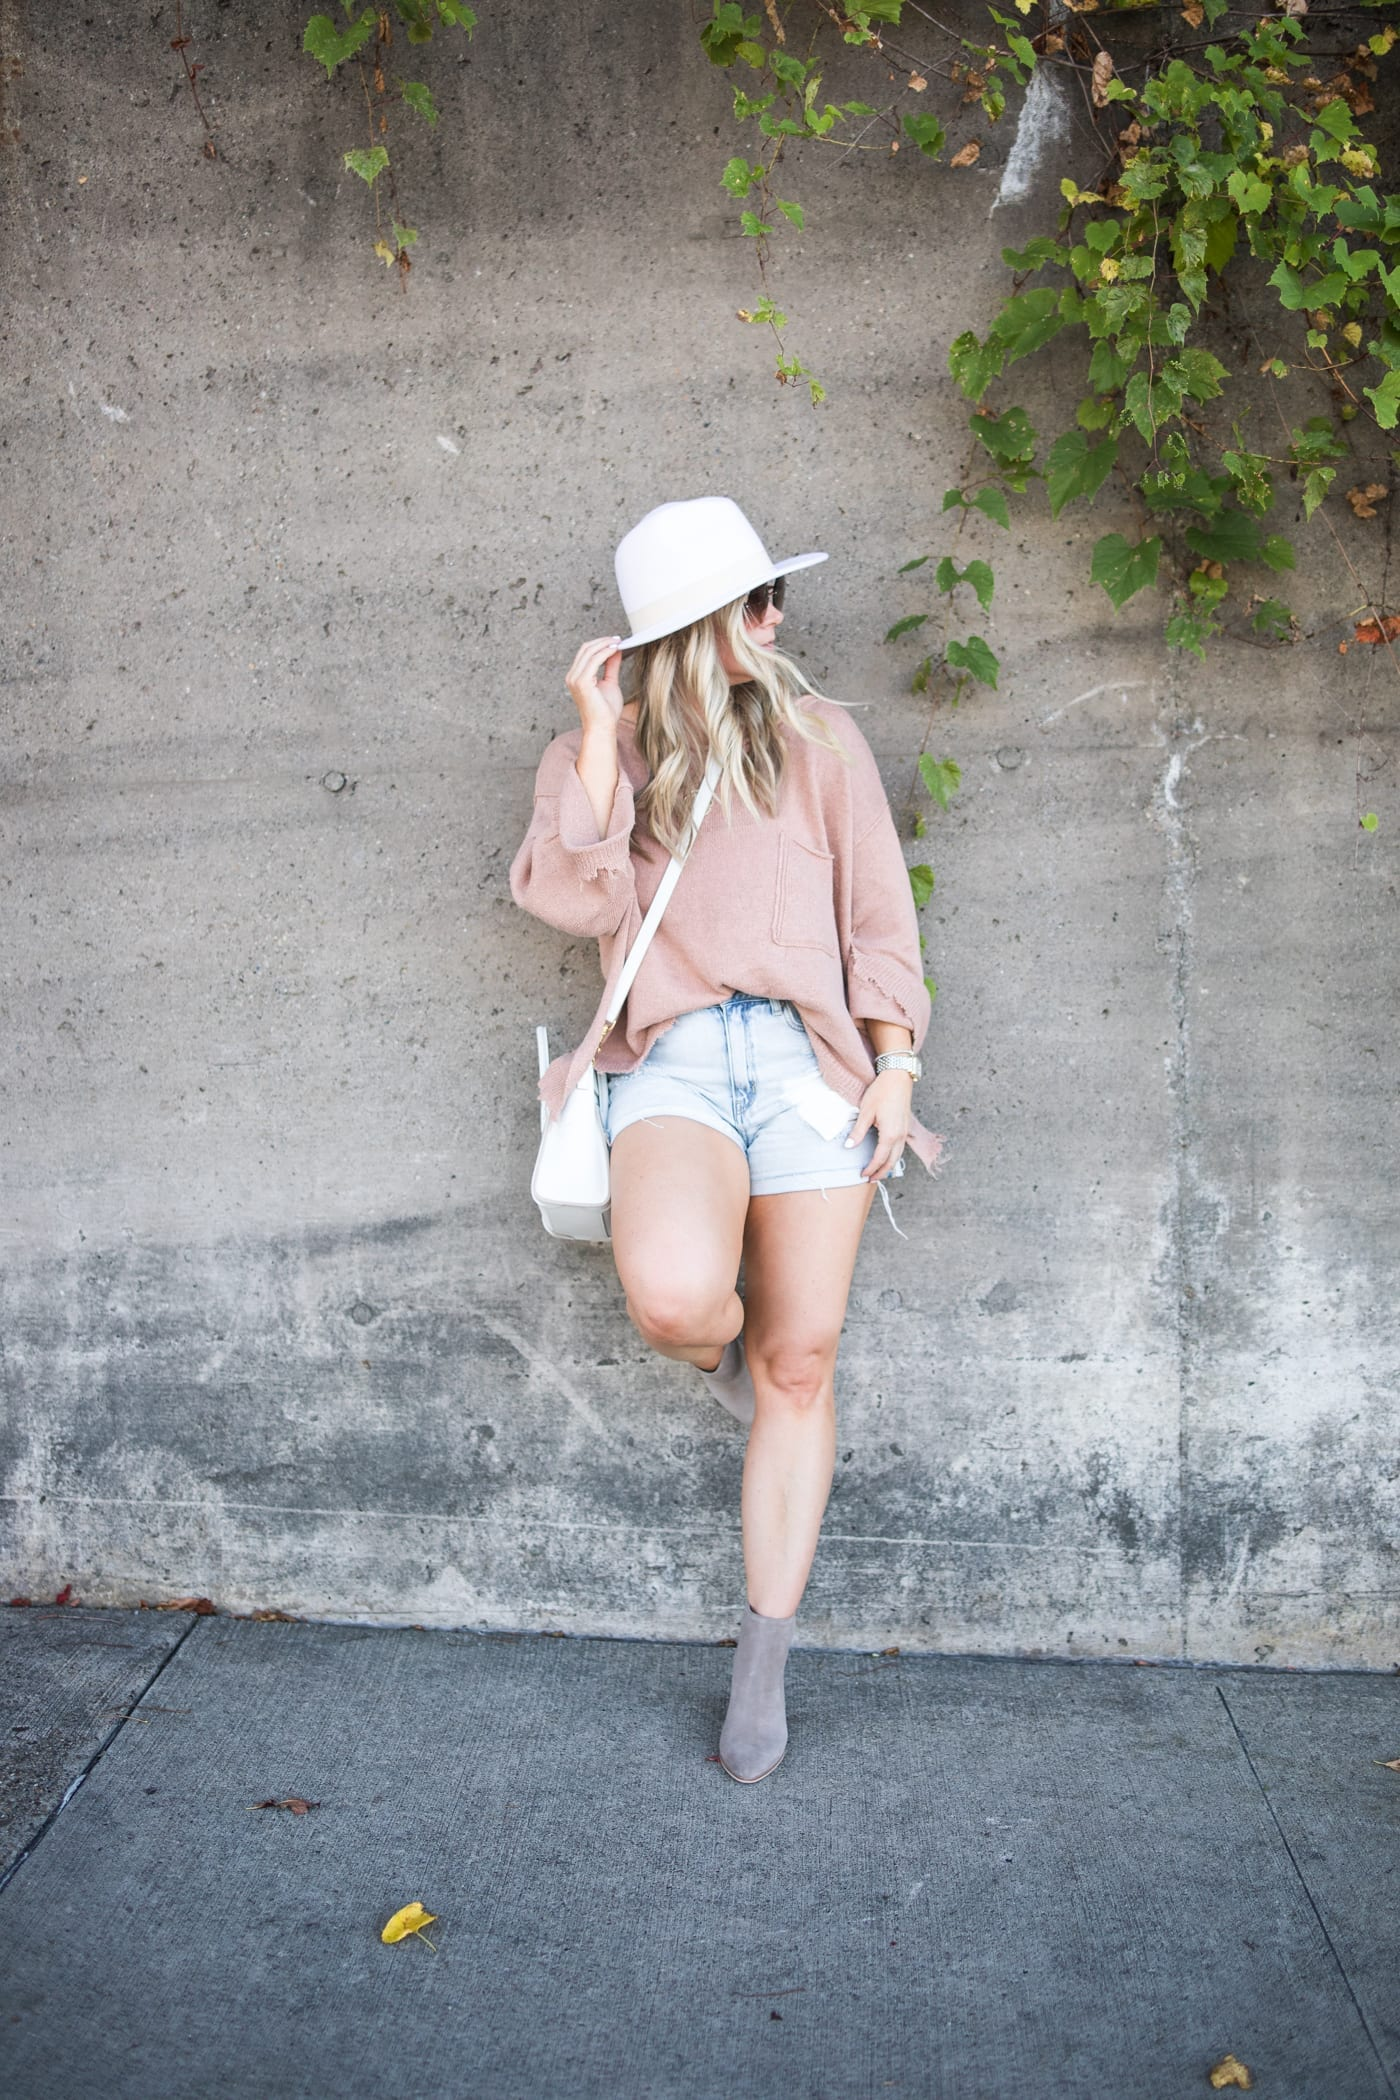 transitiong my closet- fall transition pieces- Marc Fisher Booties- Free People Sweater- White Wide Brim Hat- Shorts and Sweaters